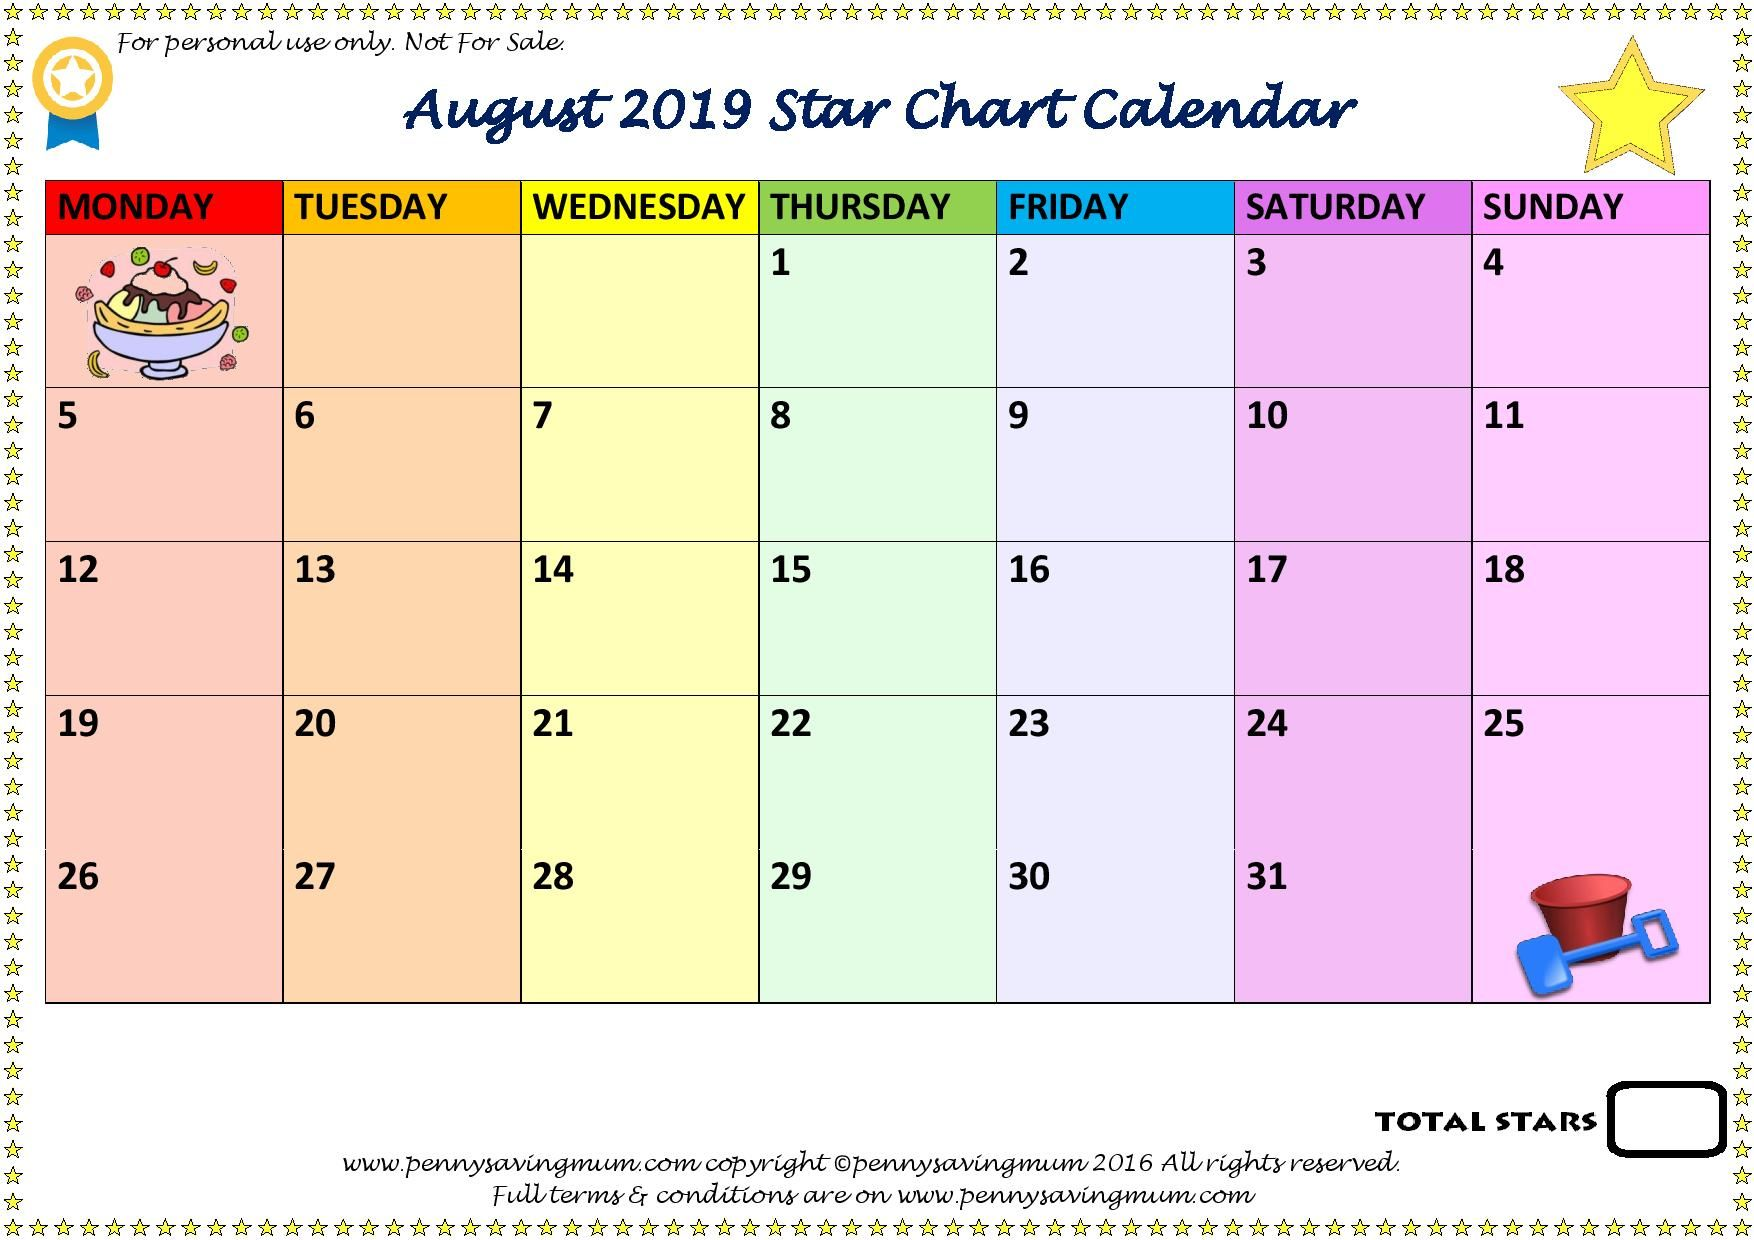 Star Chart Calendar Page  Of  August  Penny Saving Mum